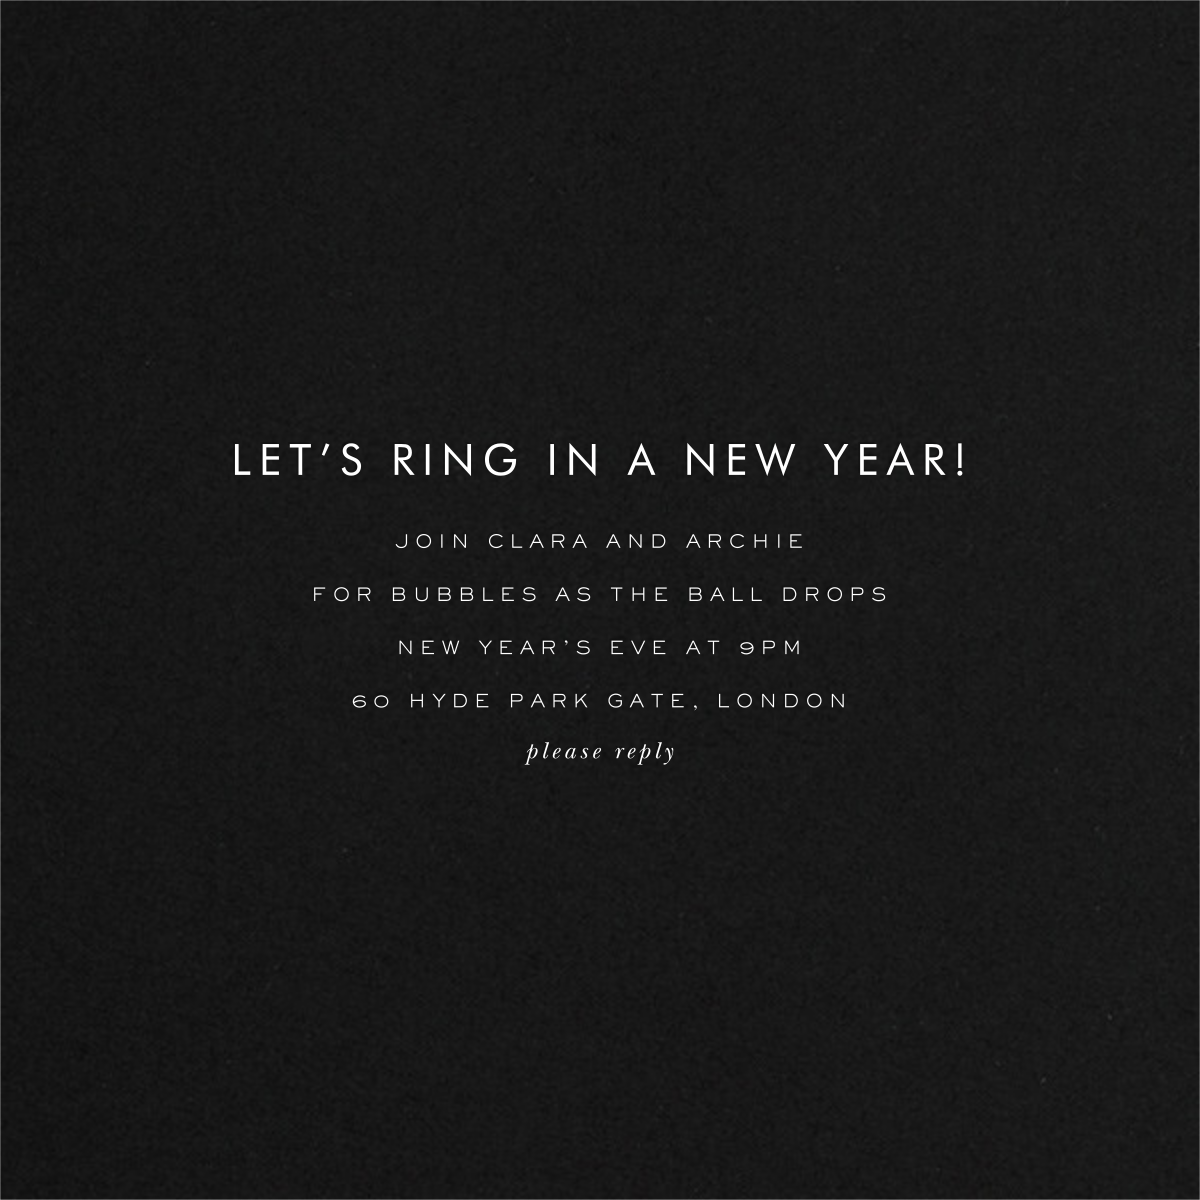 Confetti New Year (Invitation) - Silver/Black - kate spade new york - New Year's Eve - card back